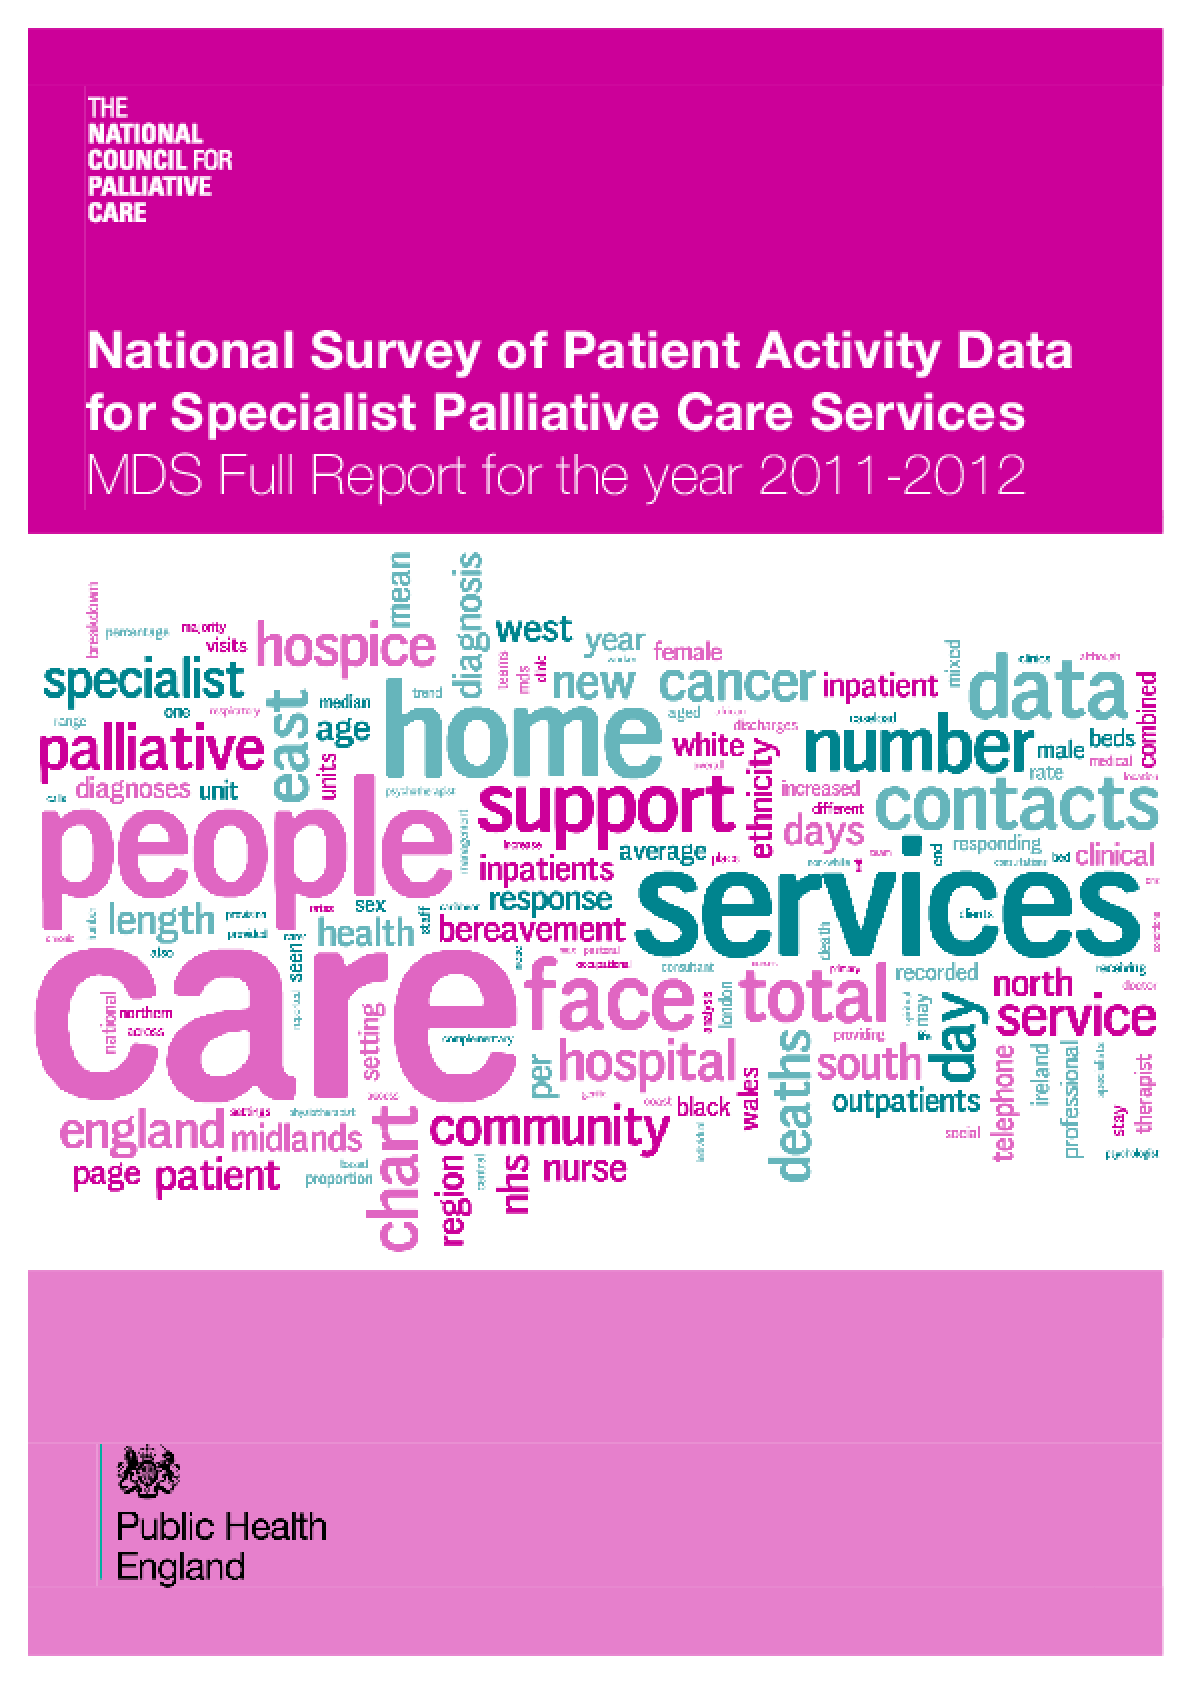 National Survey of Patient Activity Data for Specialist Palliative Care Services